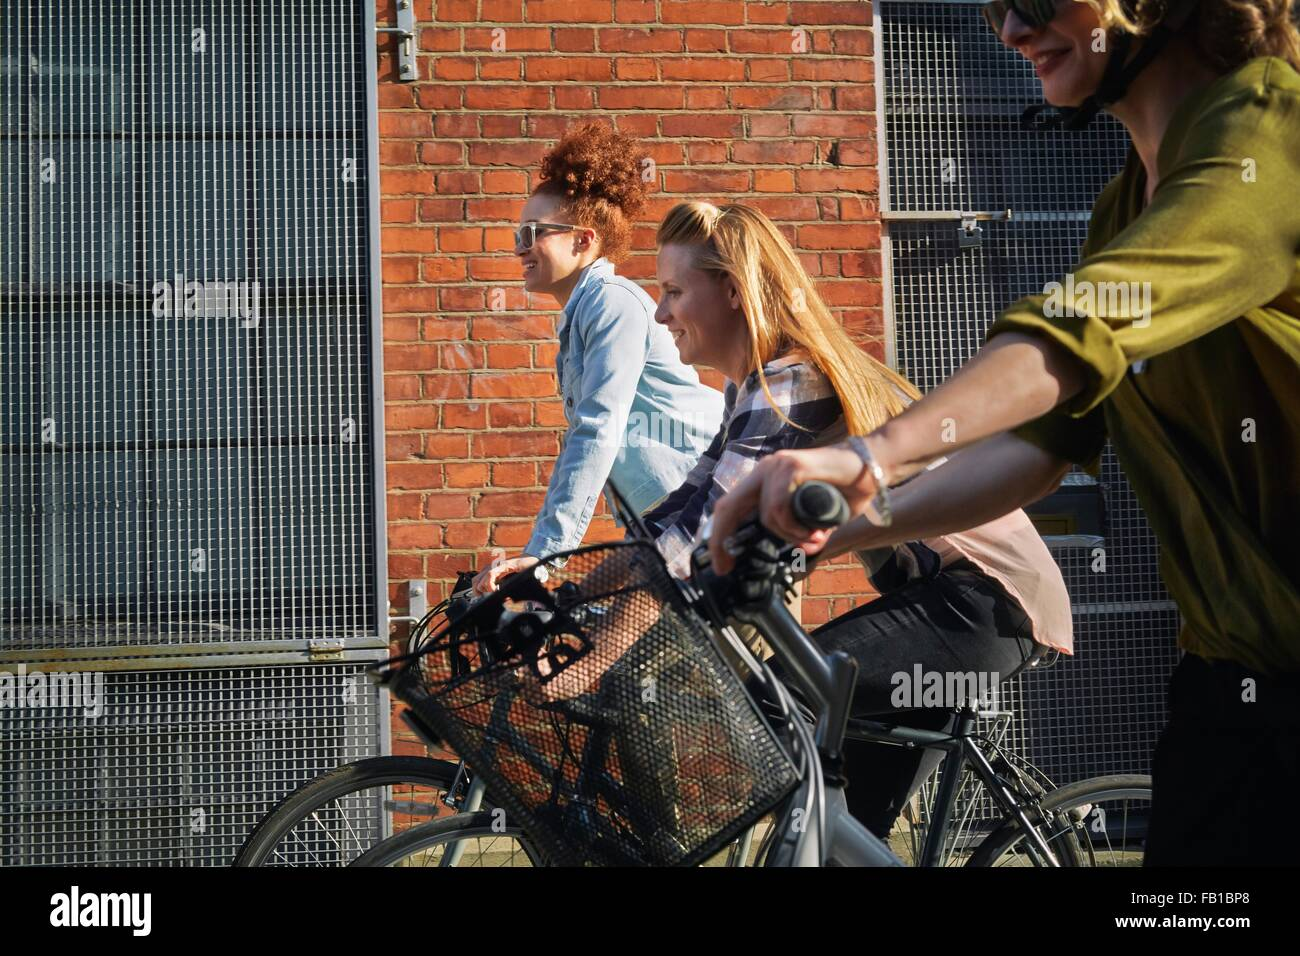 Side view of women cycling on bicycles past warehouse - Stock Image